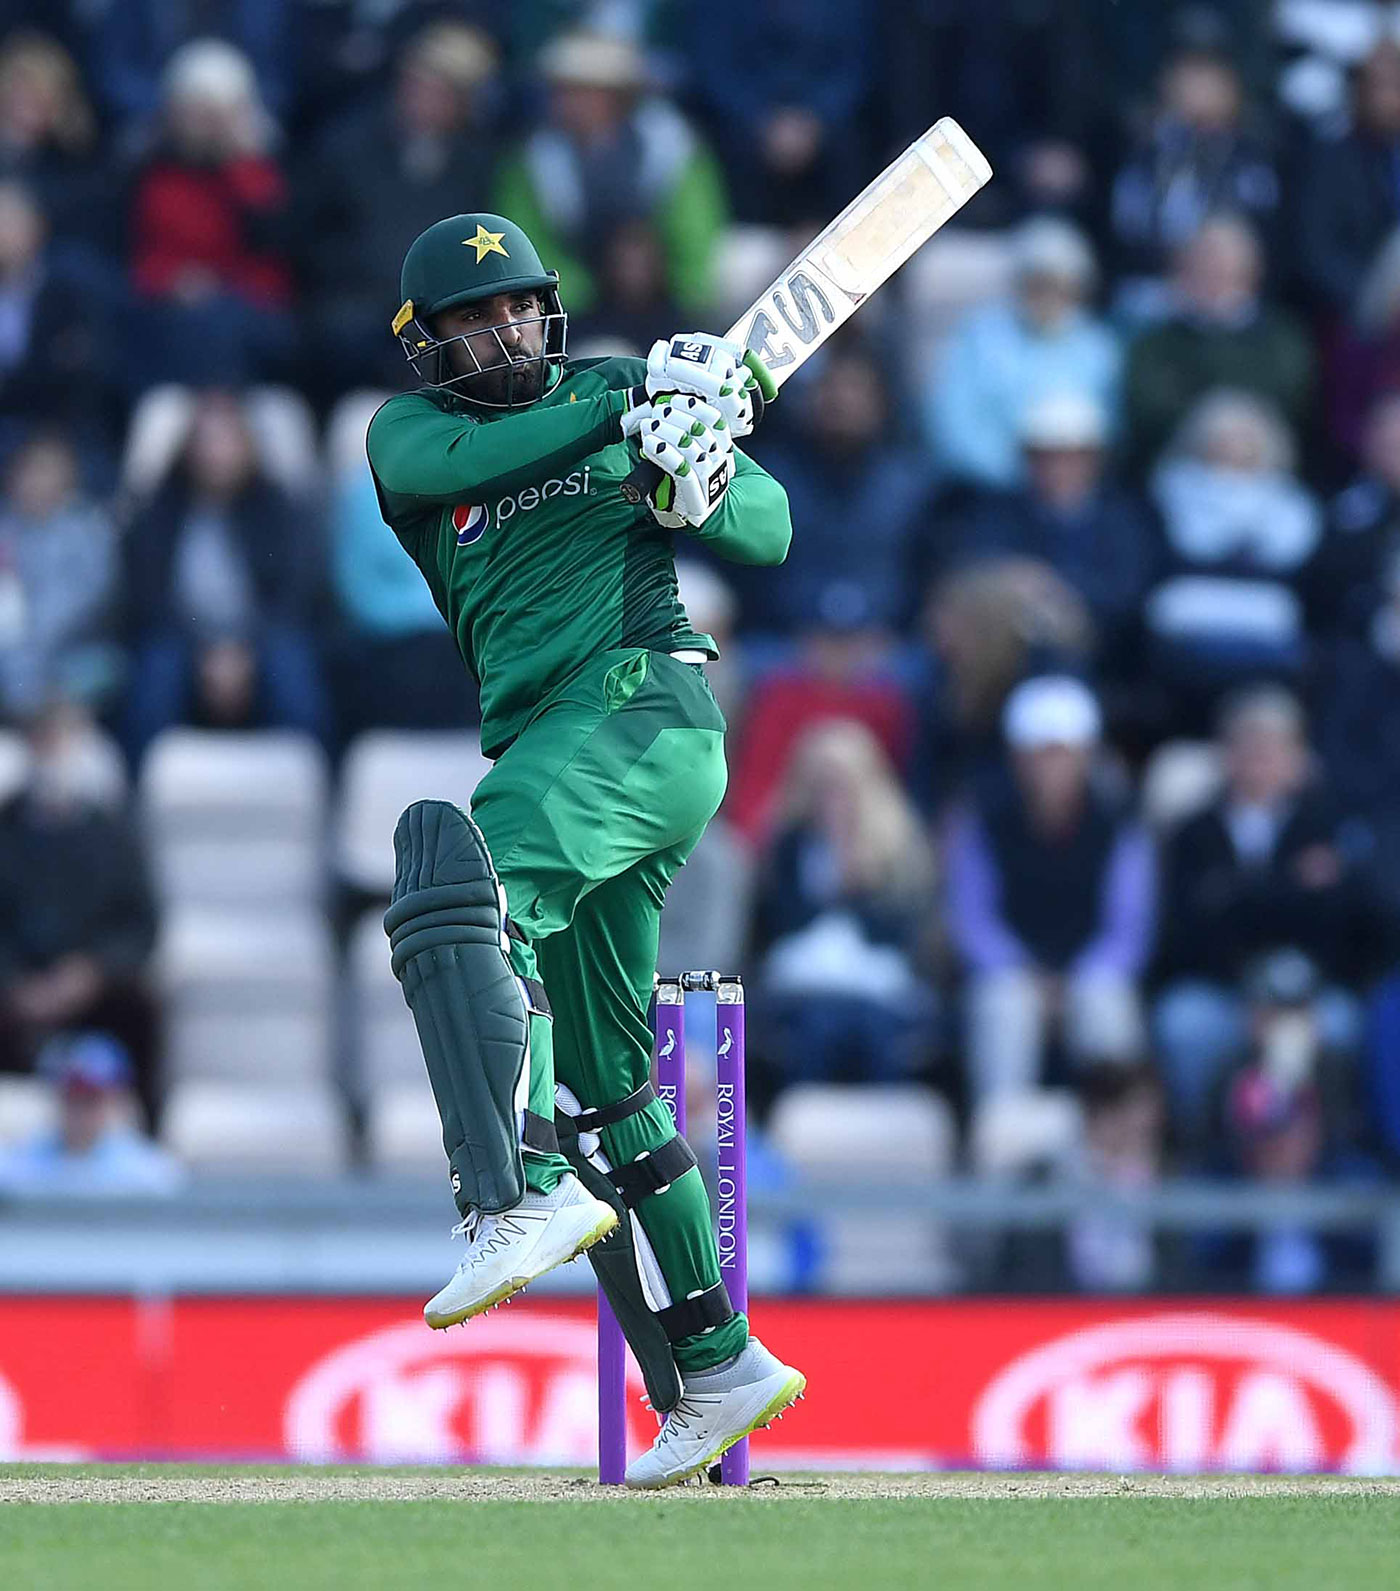 Saleem Yousuf believes Pakistan are lacking a power hitter going into the World Cup cricket